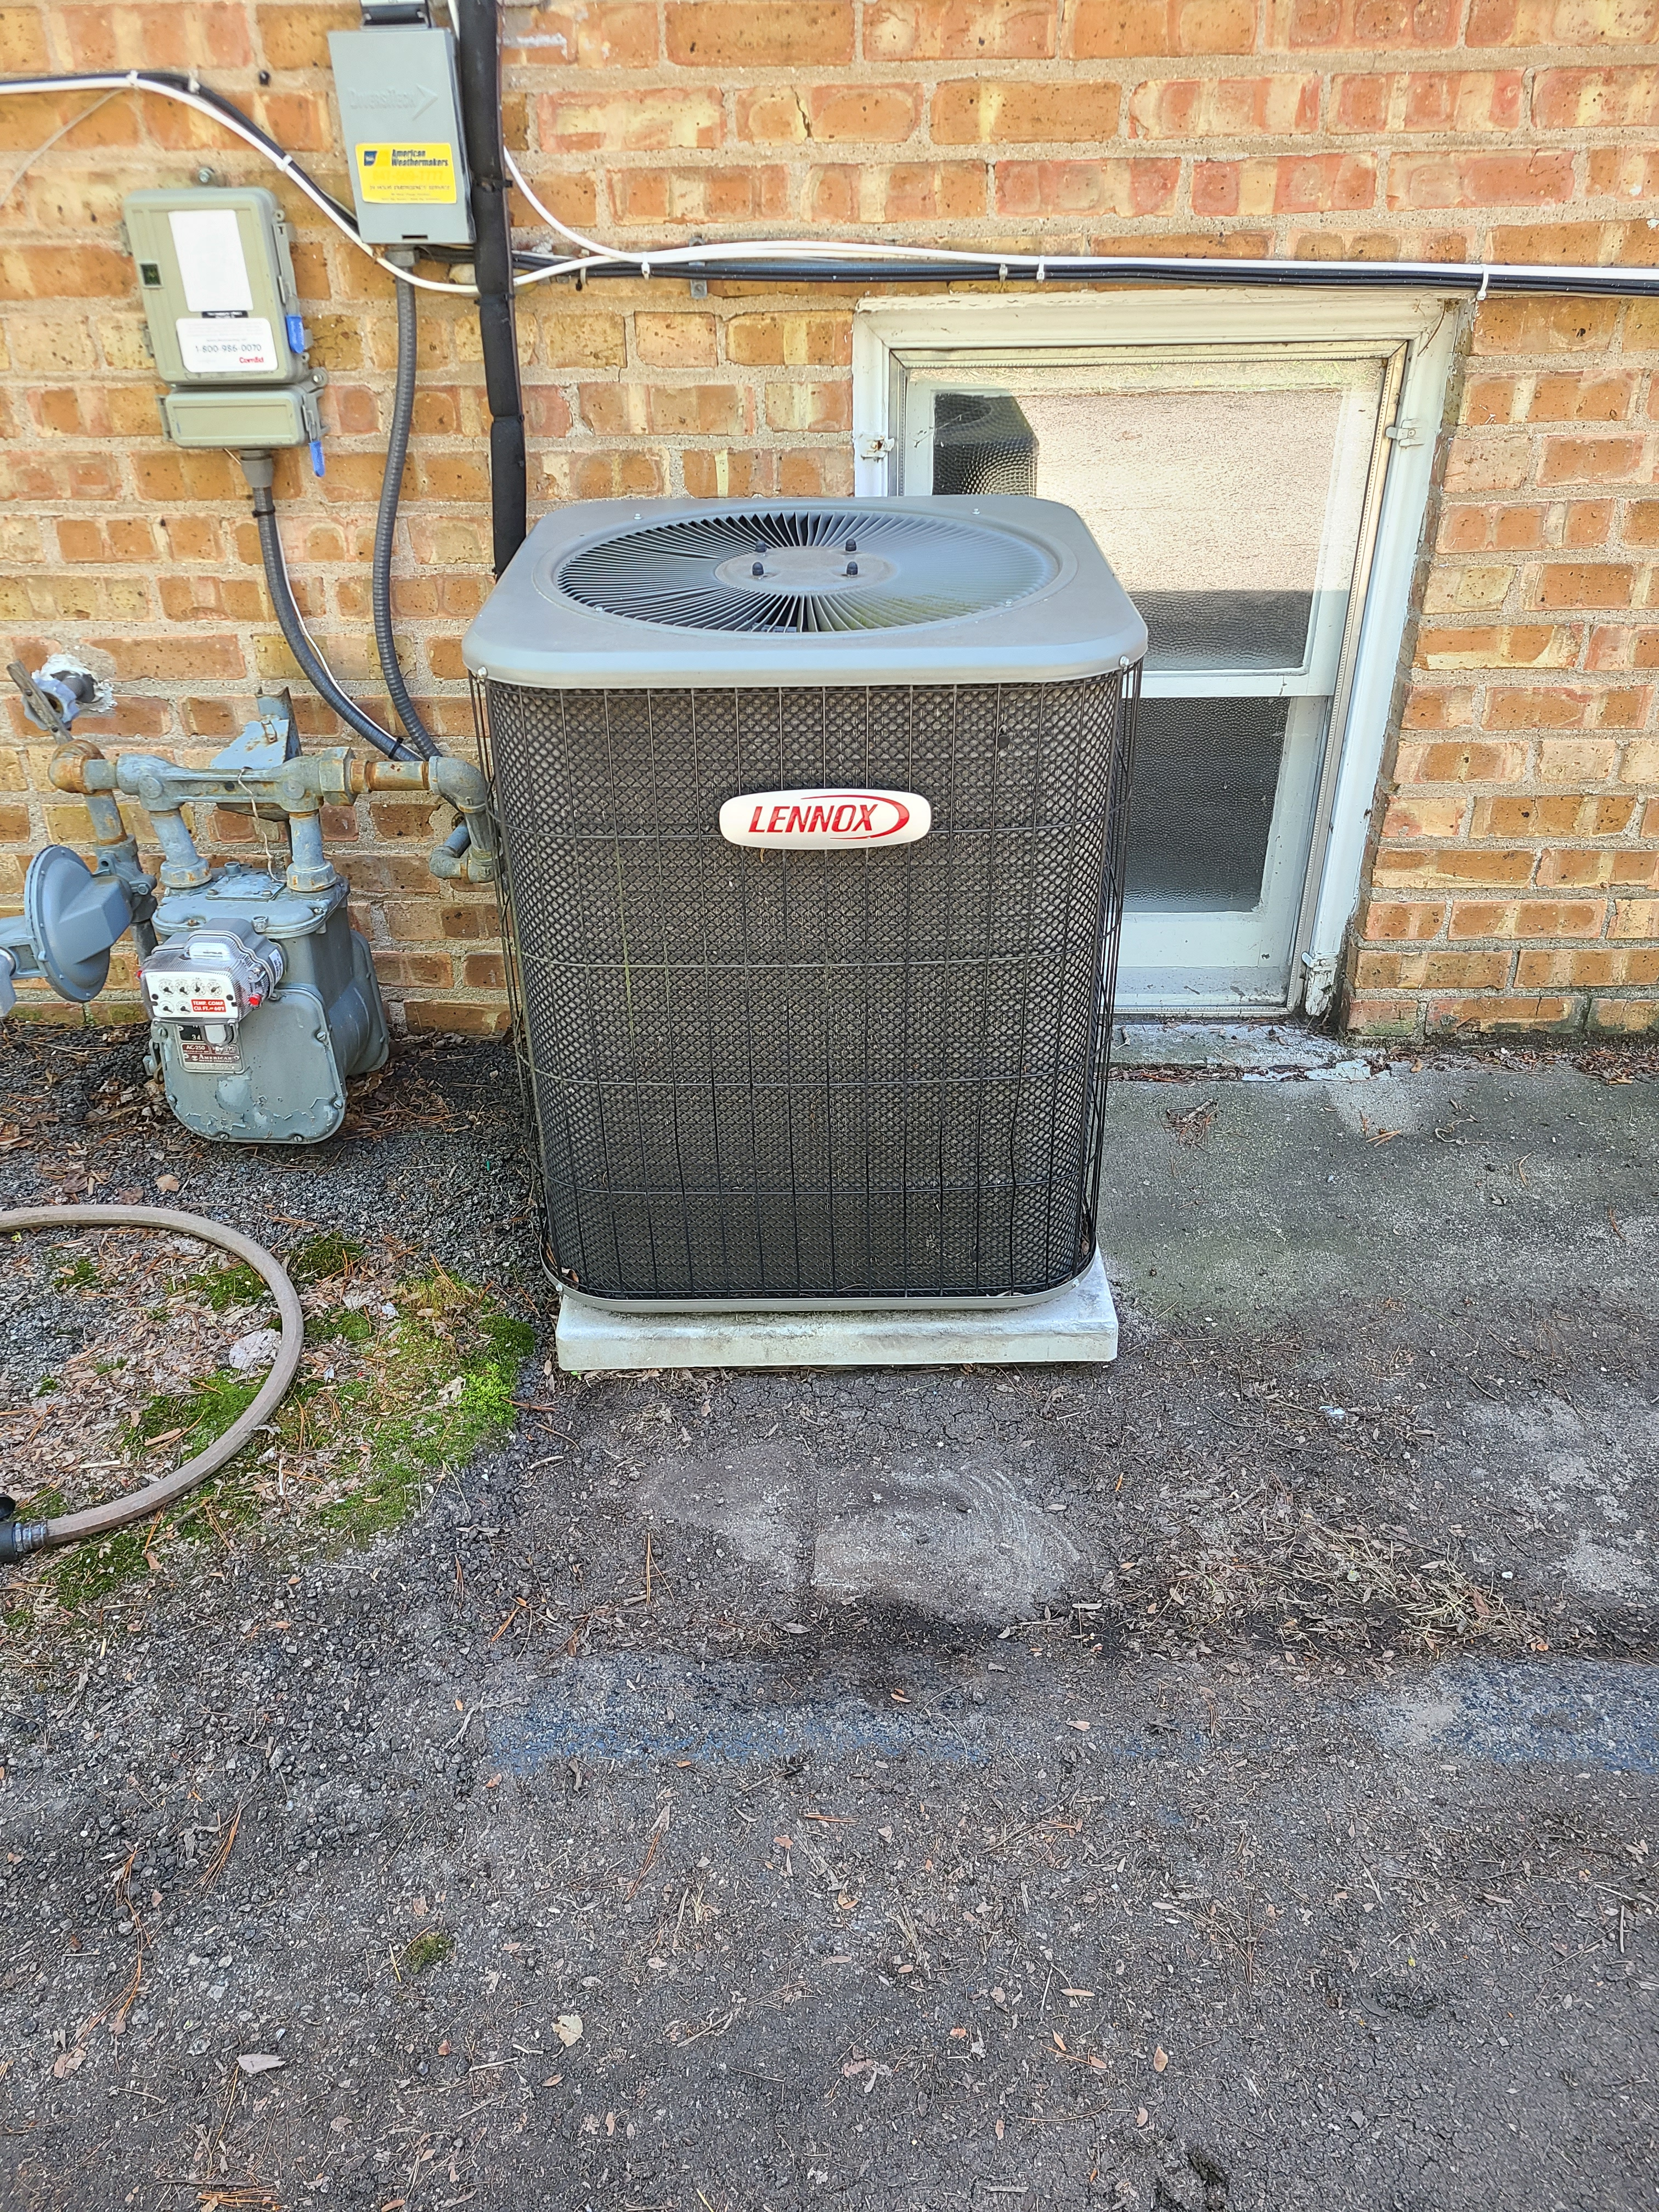 Don't worry about your Lennox AC this summer and call American Weathermakers today.